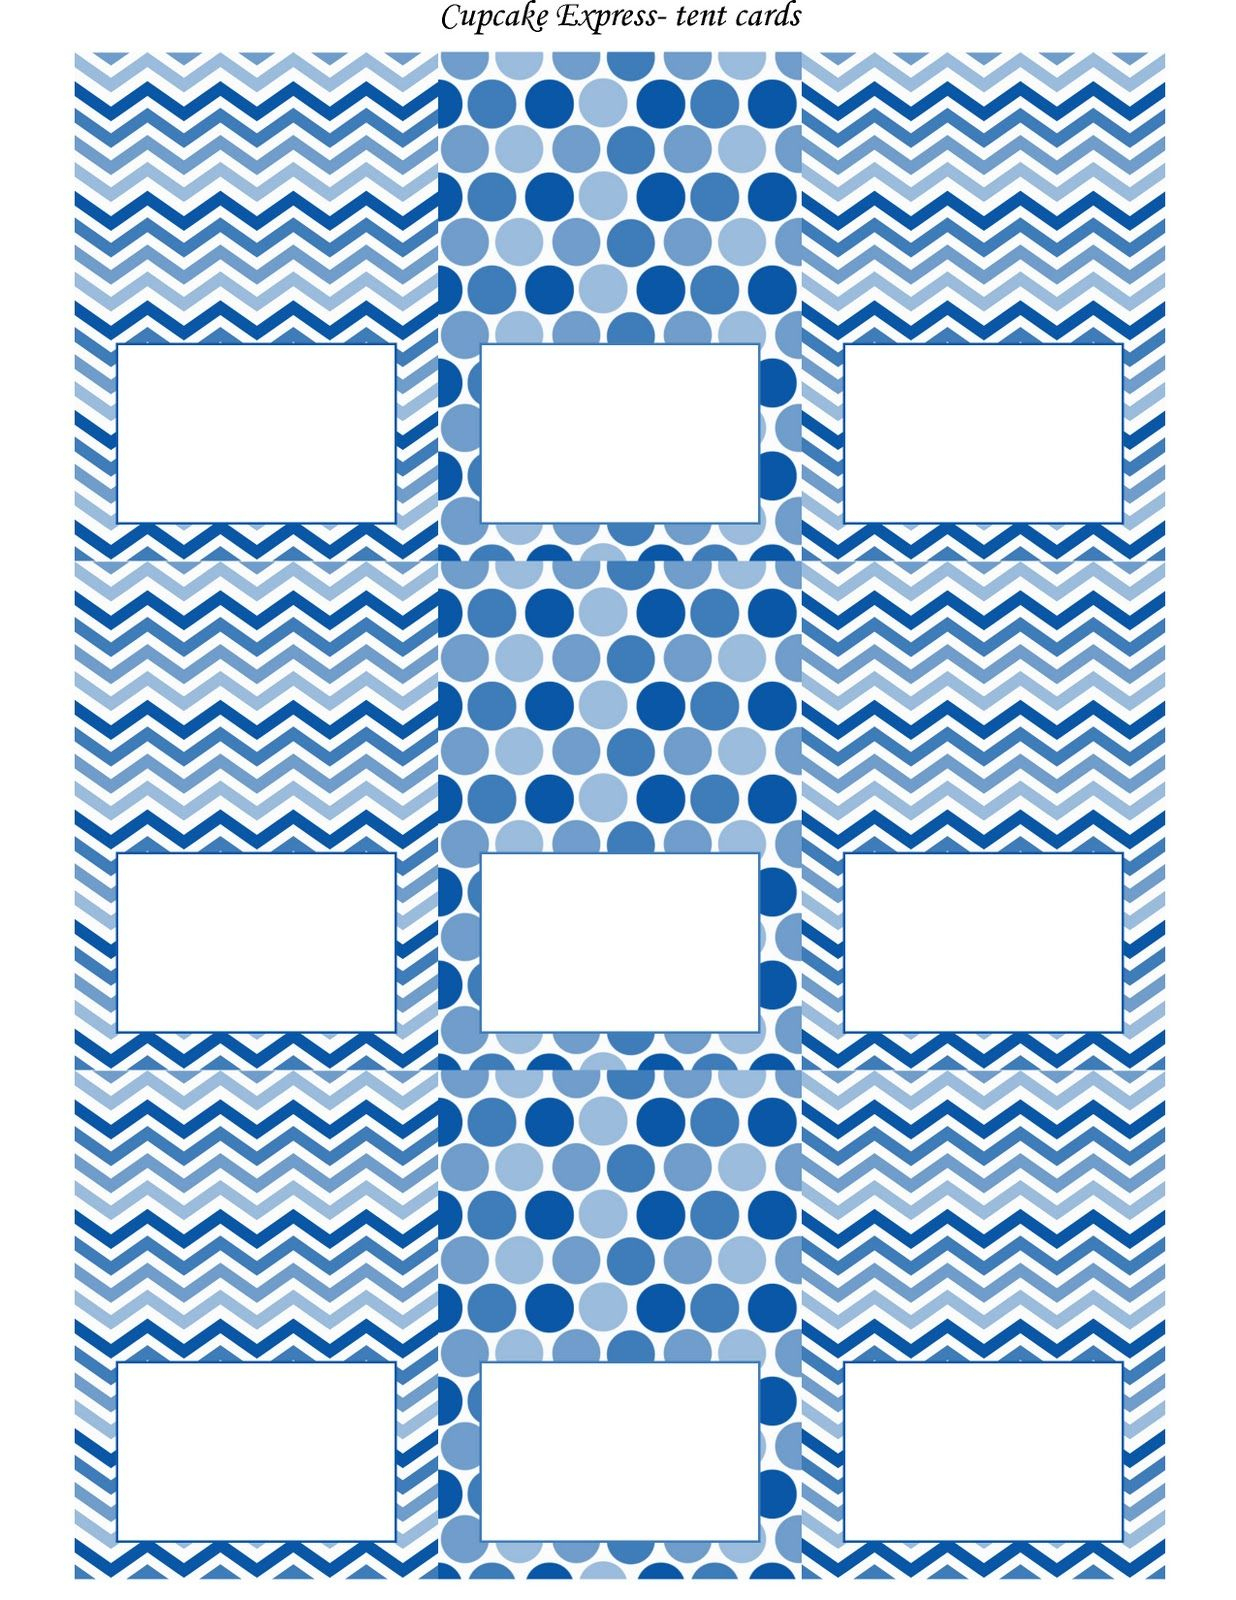 Free Blue And White Printable Tent Cards   Free Printables - Free Printable Food Tent Cards